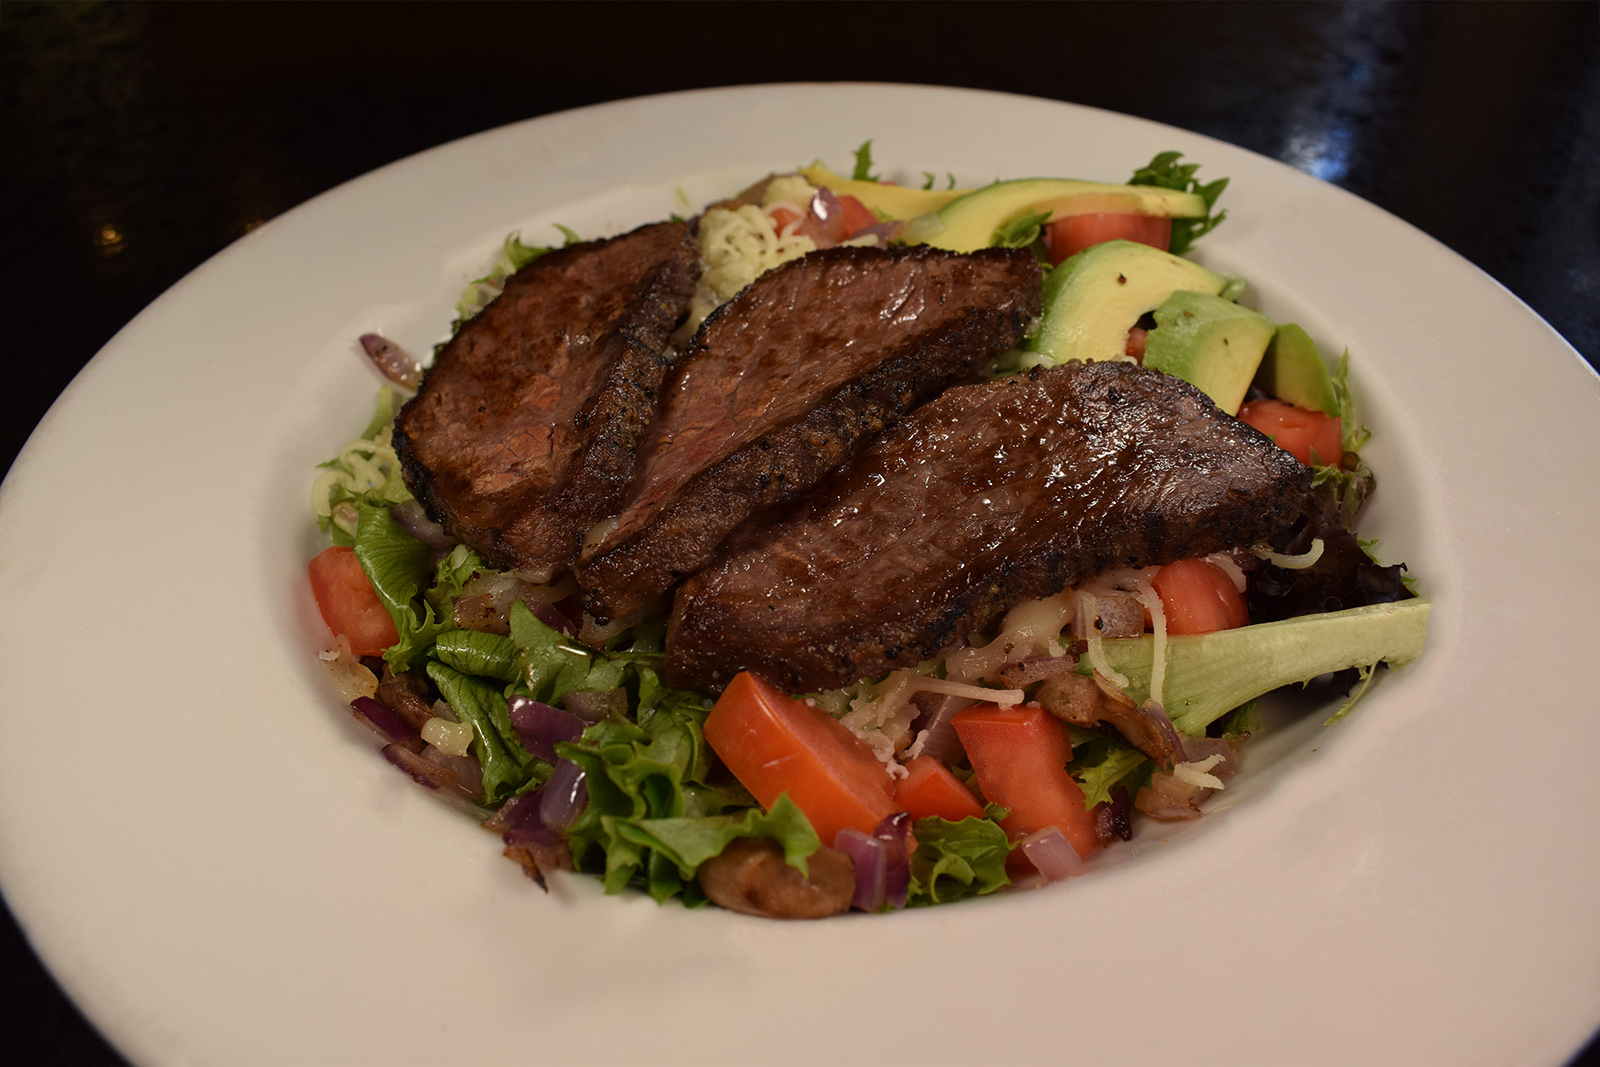 Steak Dinner with a Salad